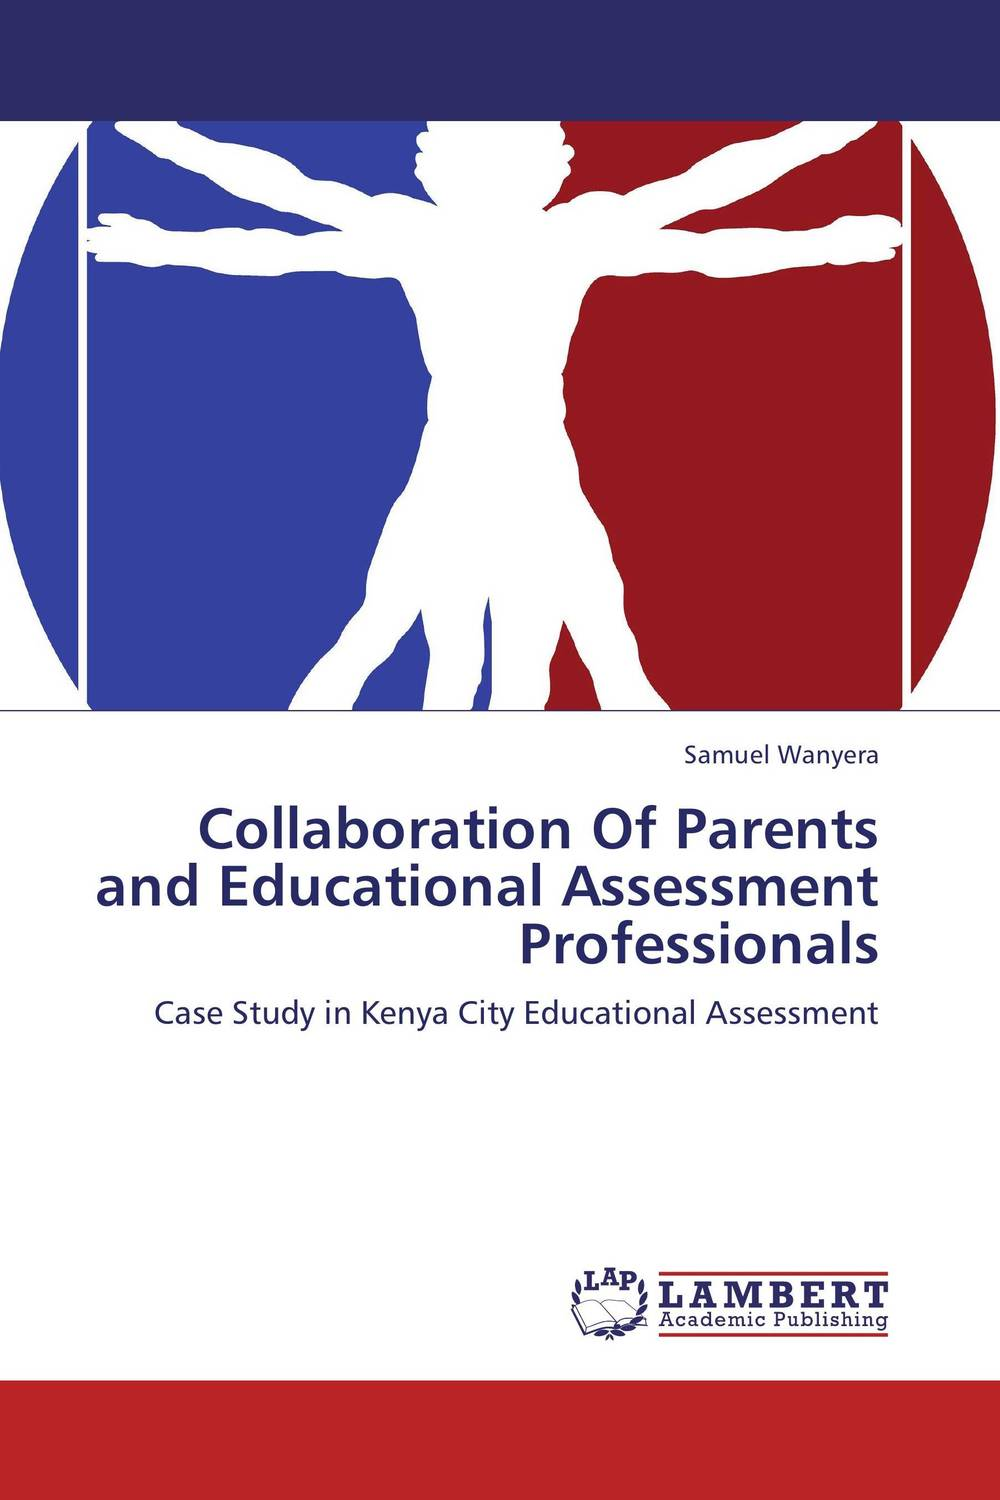 Collaboration Of Parents and Educational Assessment Professionals psychiatric interviewing and assessment